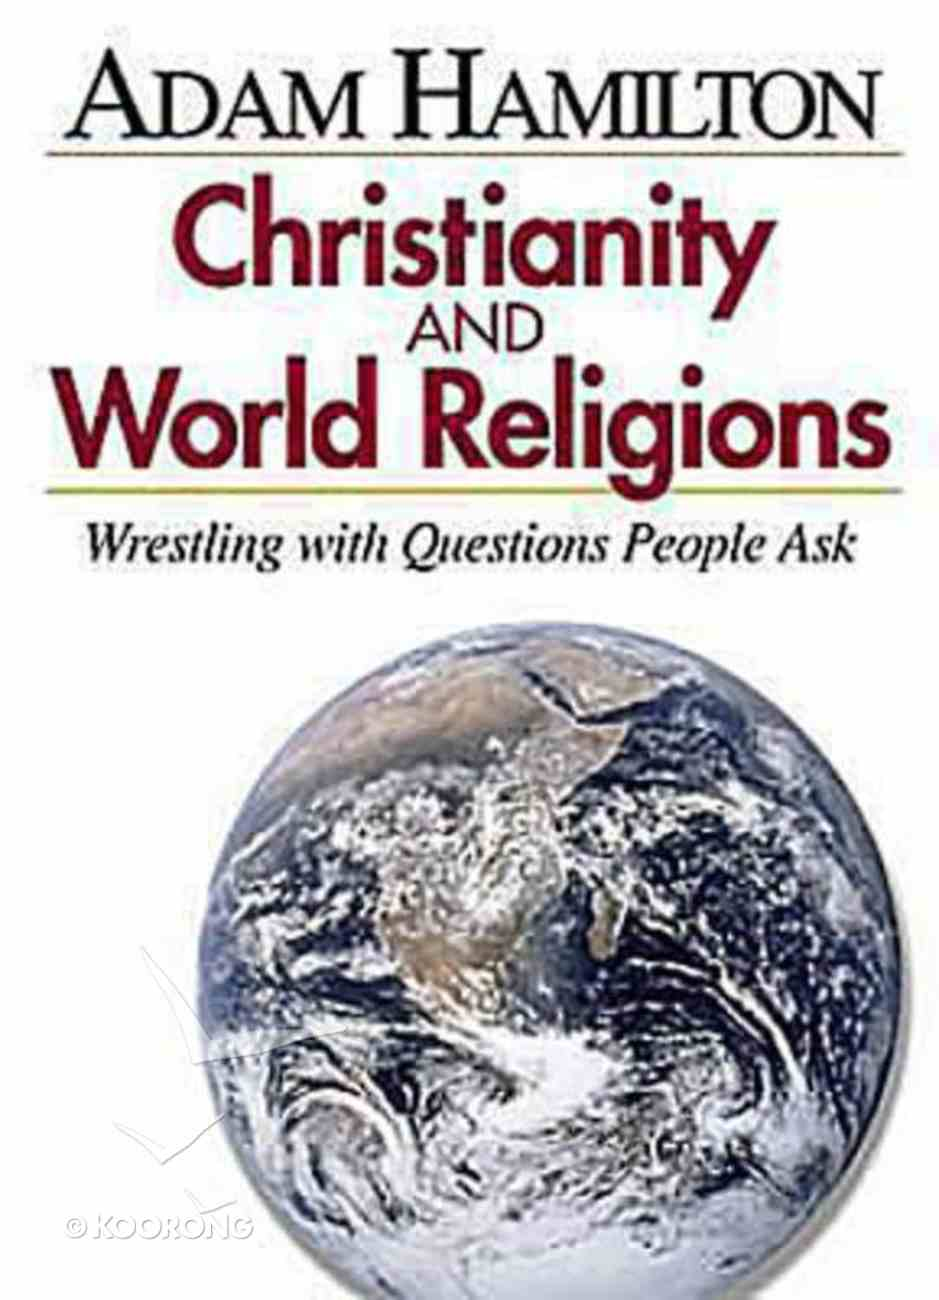 Christianity and World Religions DVD (Christianity And World Religions Series) DVD